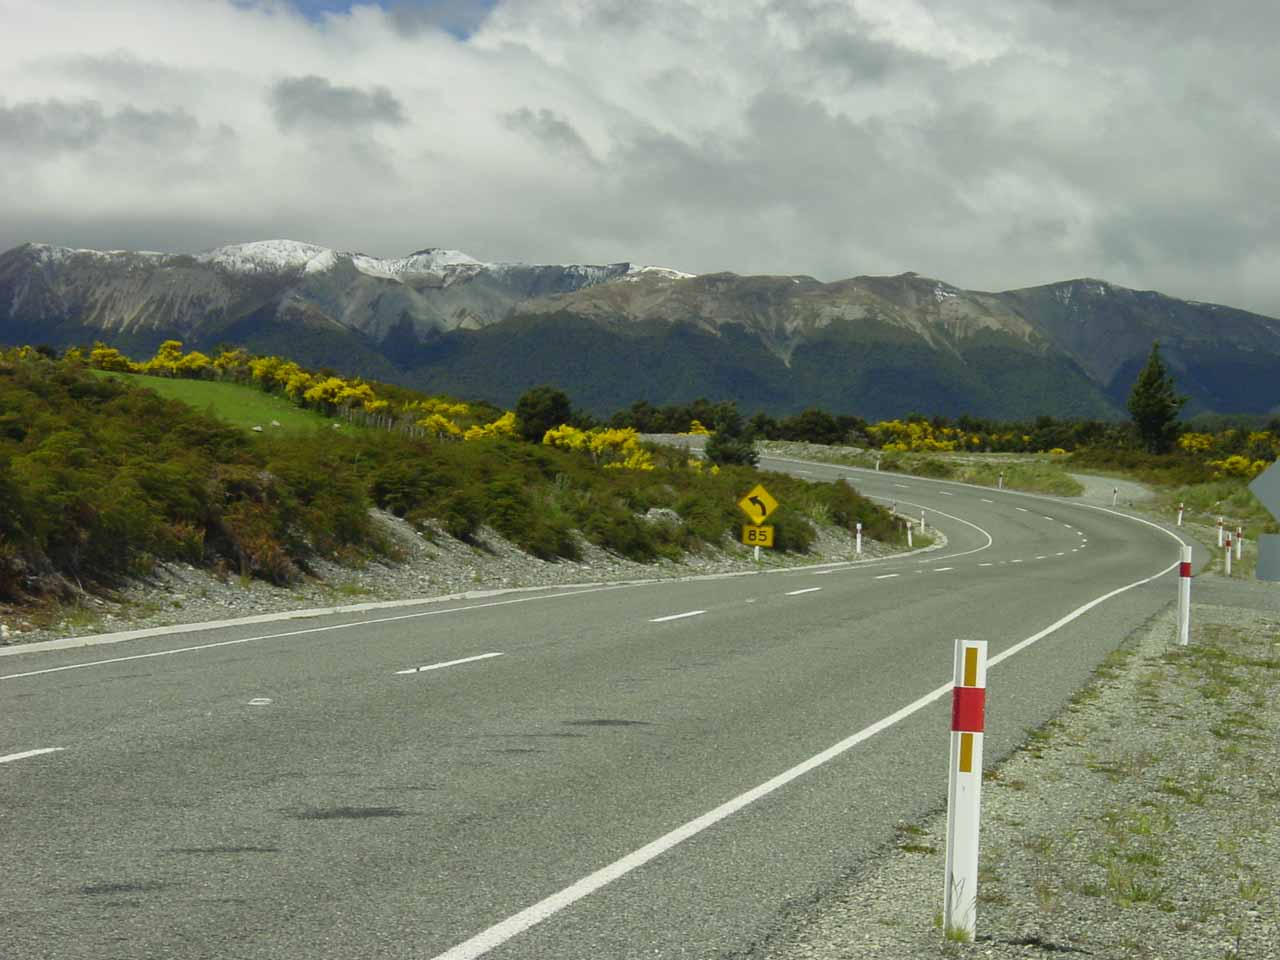 Curve in the Milford Highway as we were flanked by beautiful mountains on our way back to Te Anau